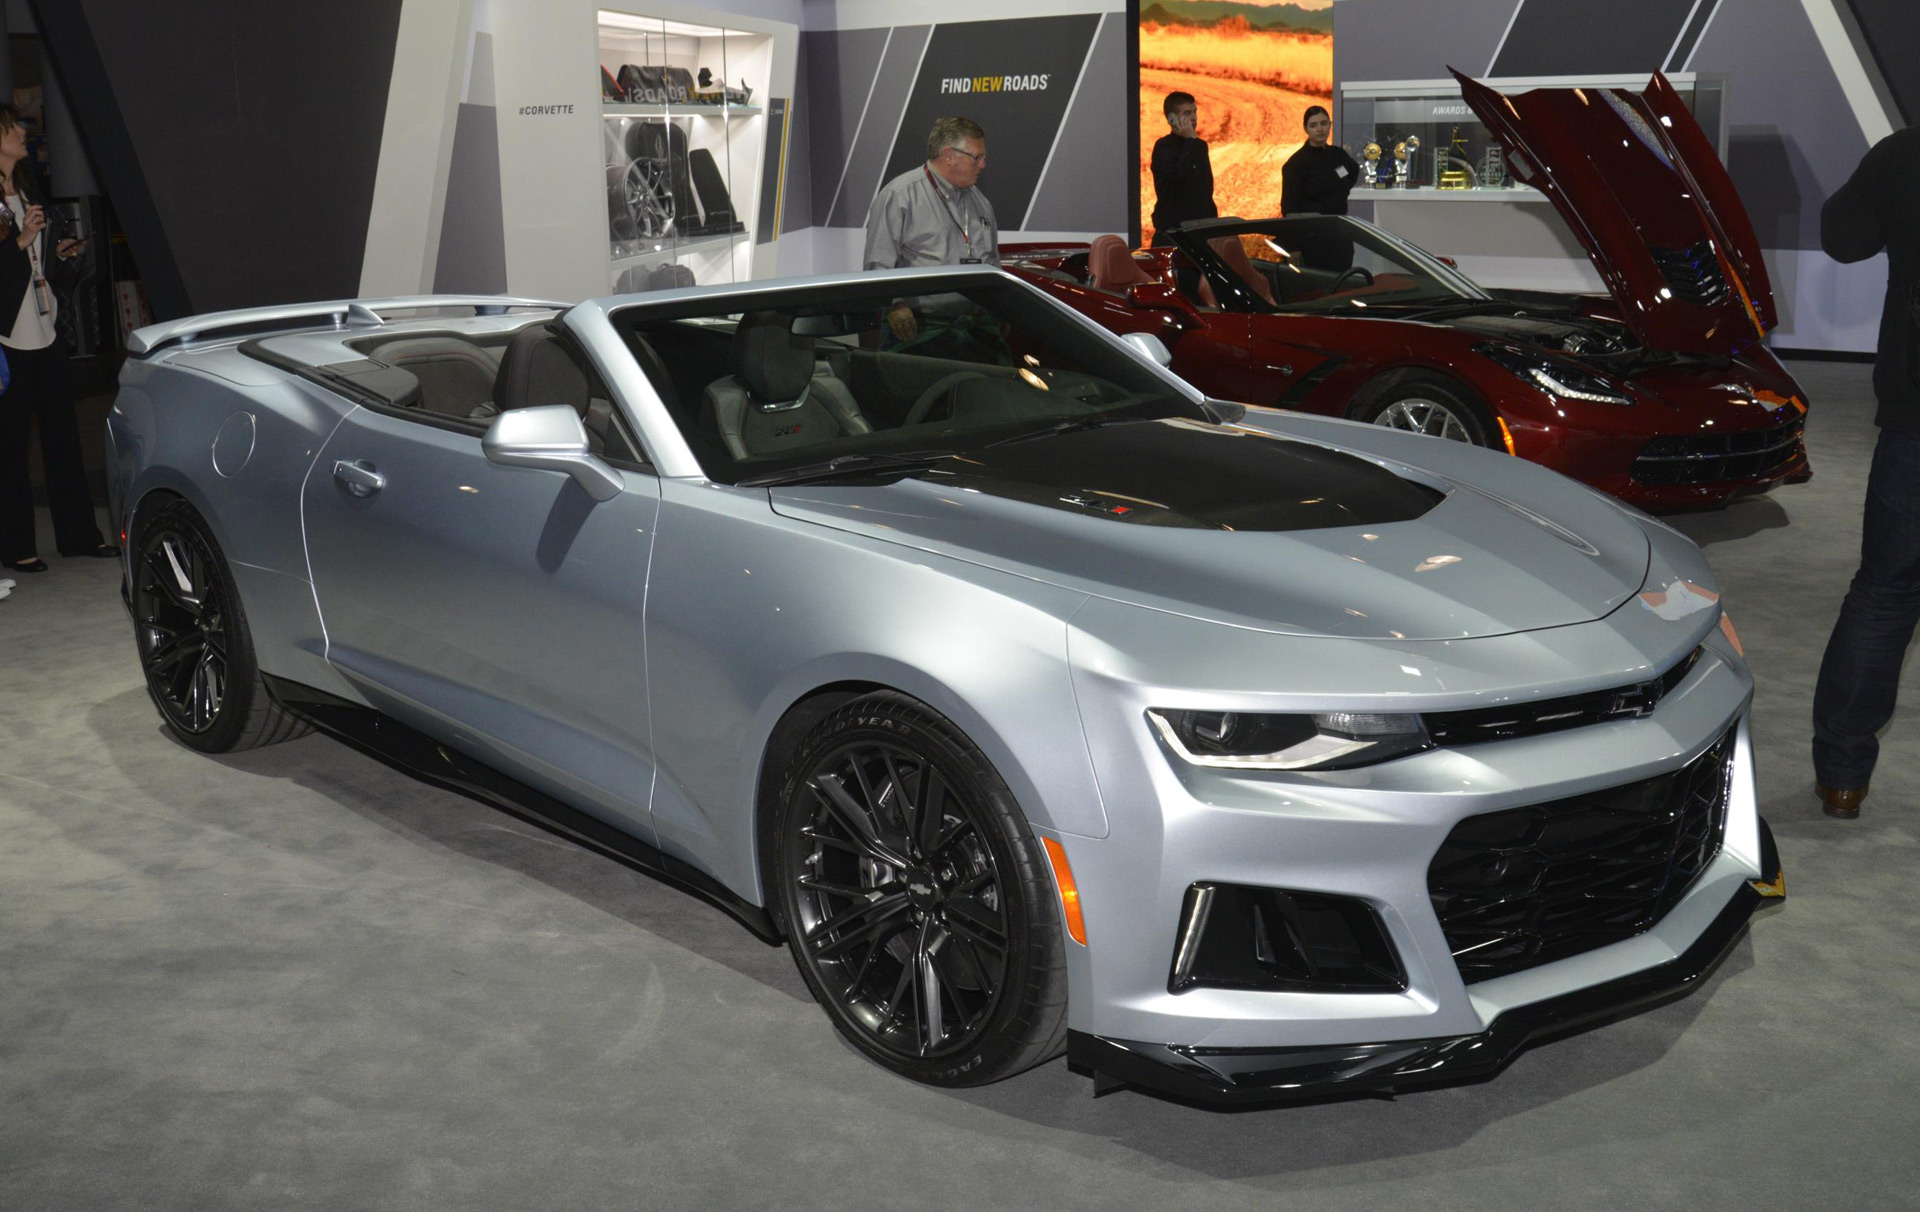 2017 Chevrolet Camaro Zl1 Convertible Debuts In New York Live Photos And Video